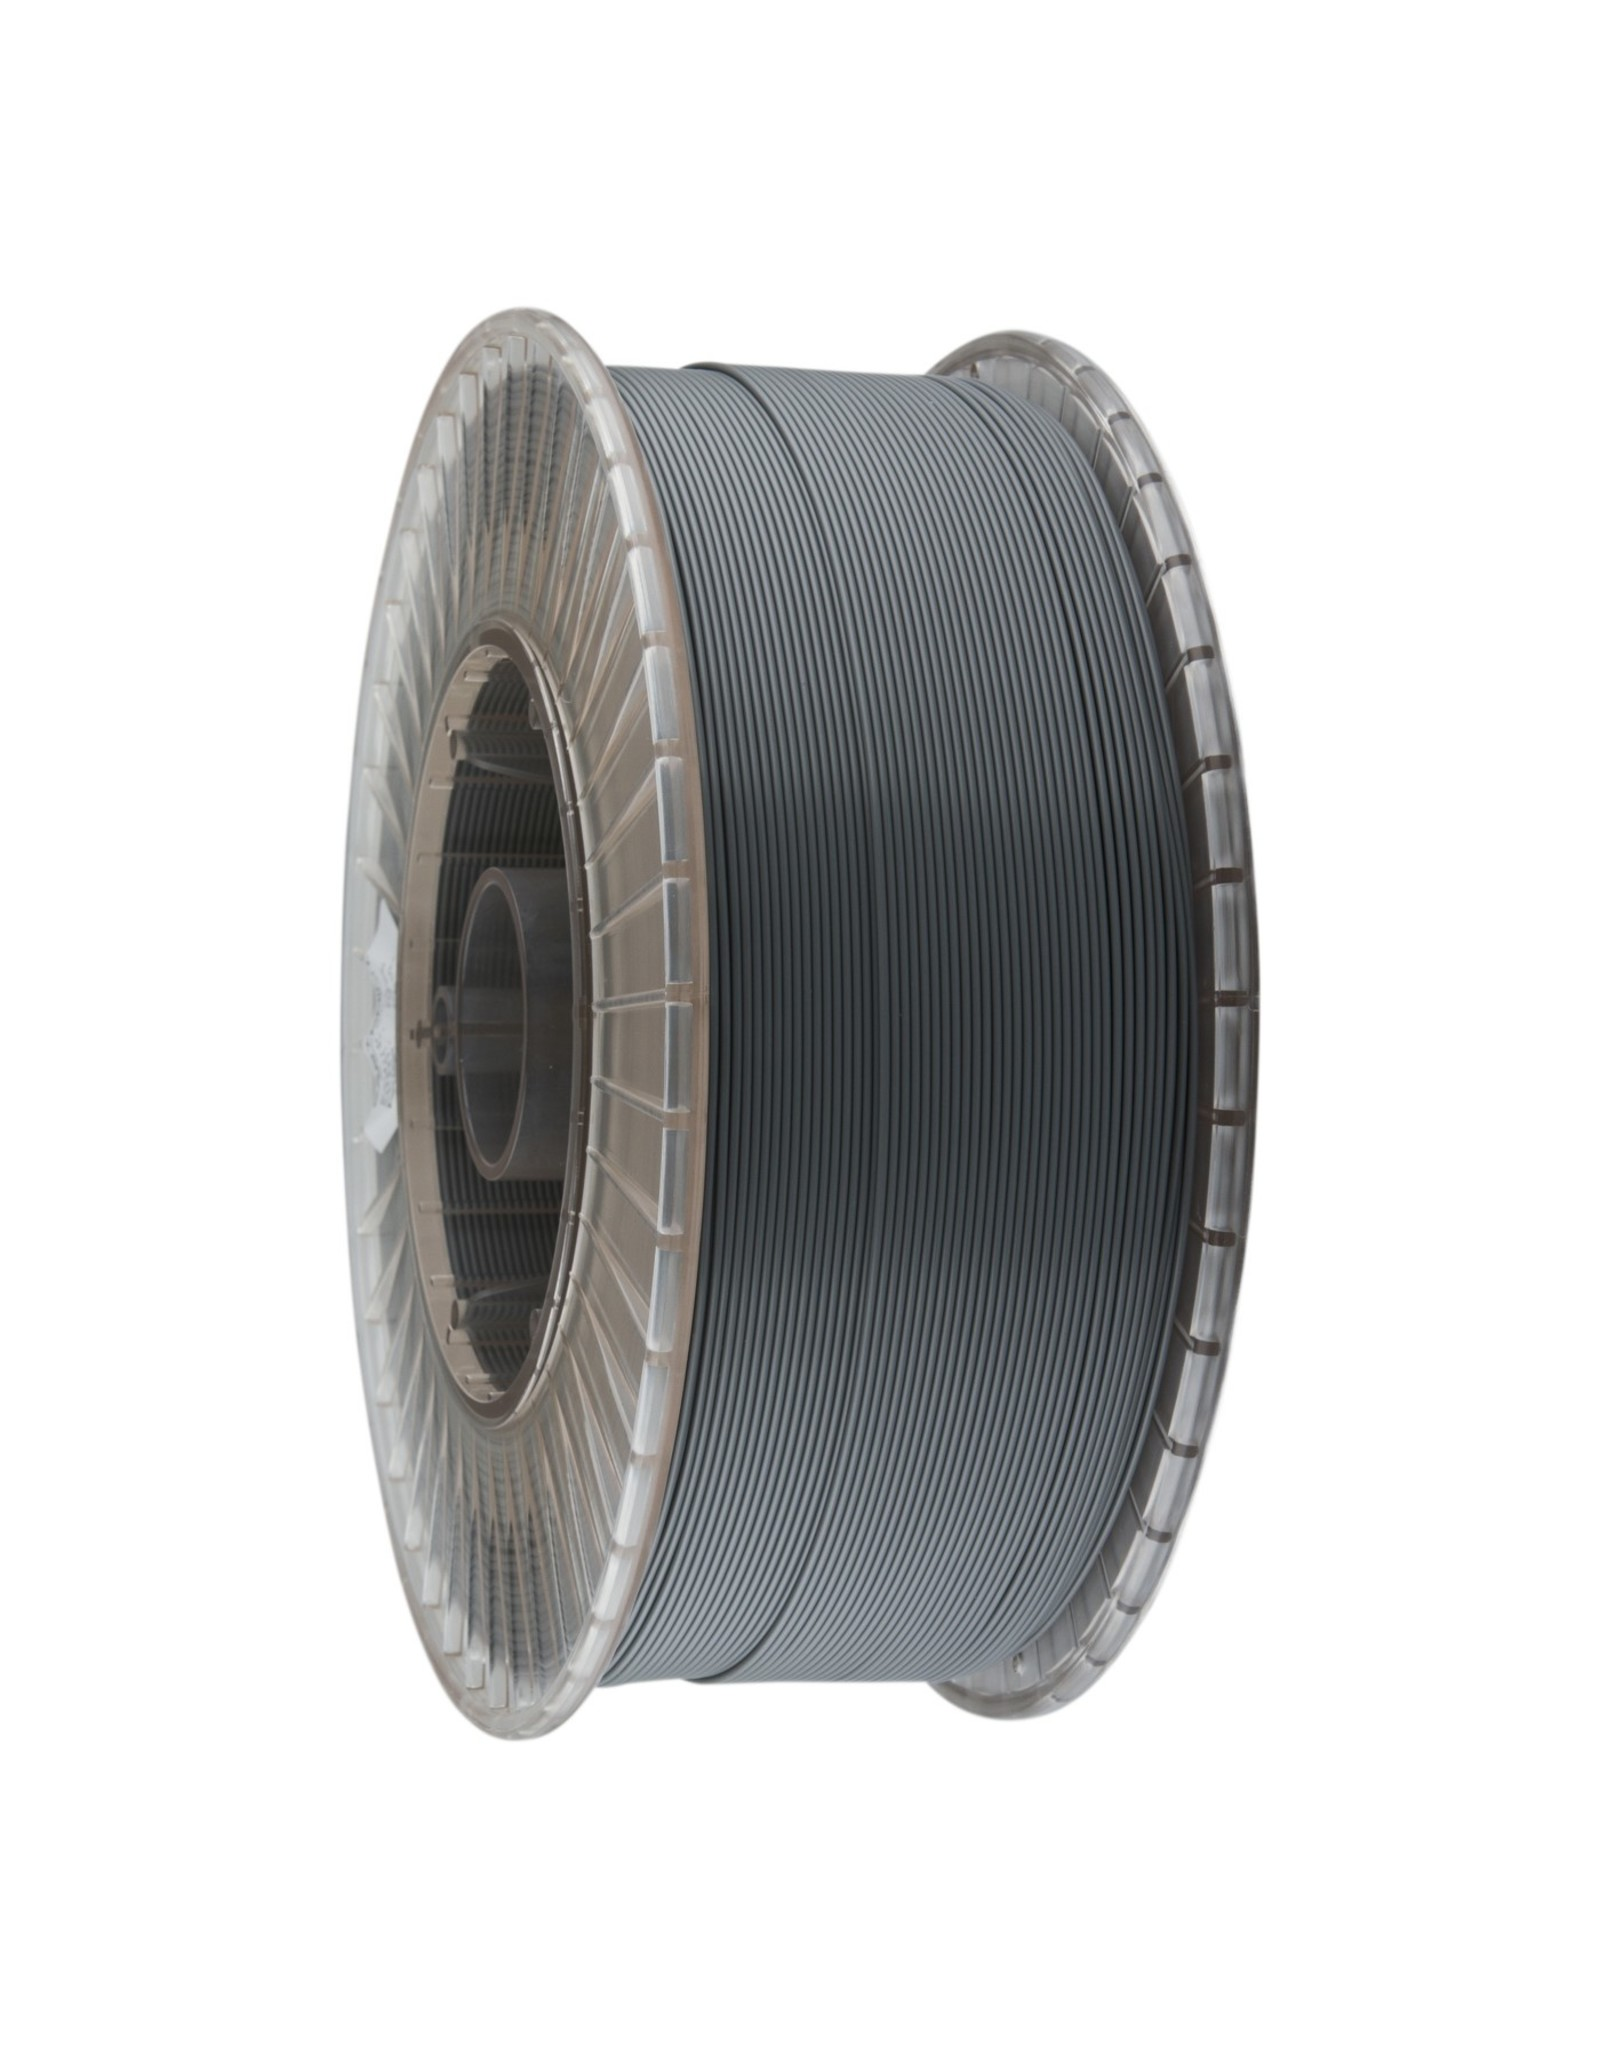 Prima Prima Easyprint PLA 1.75mm 1kg Dark Grey